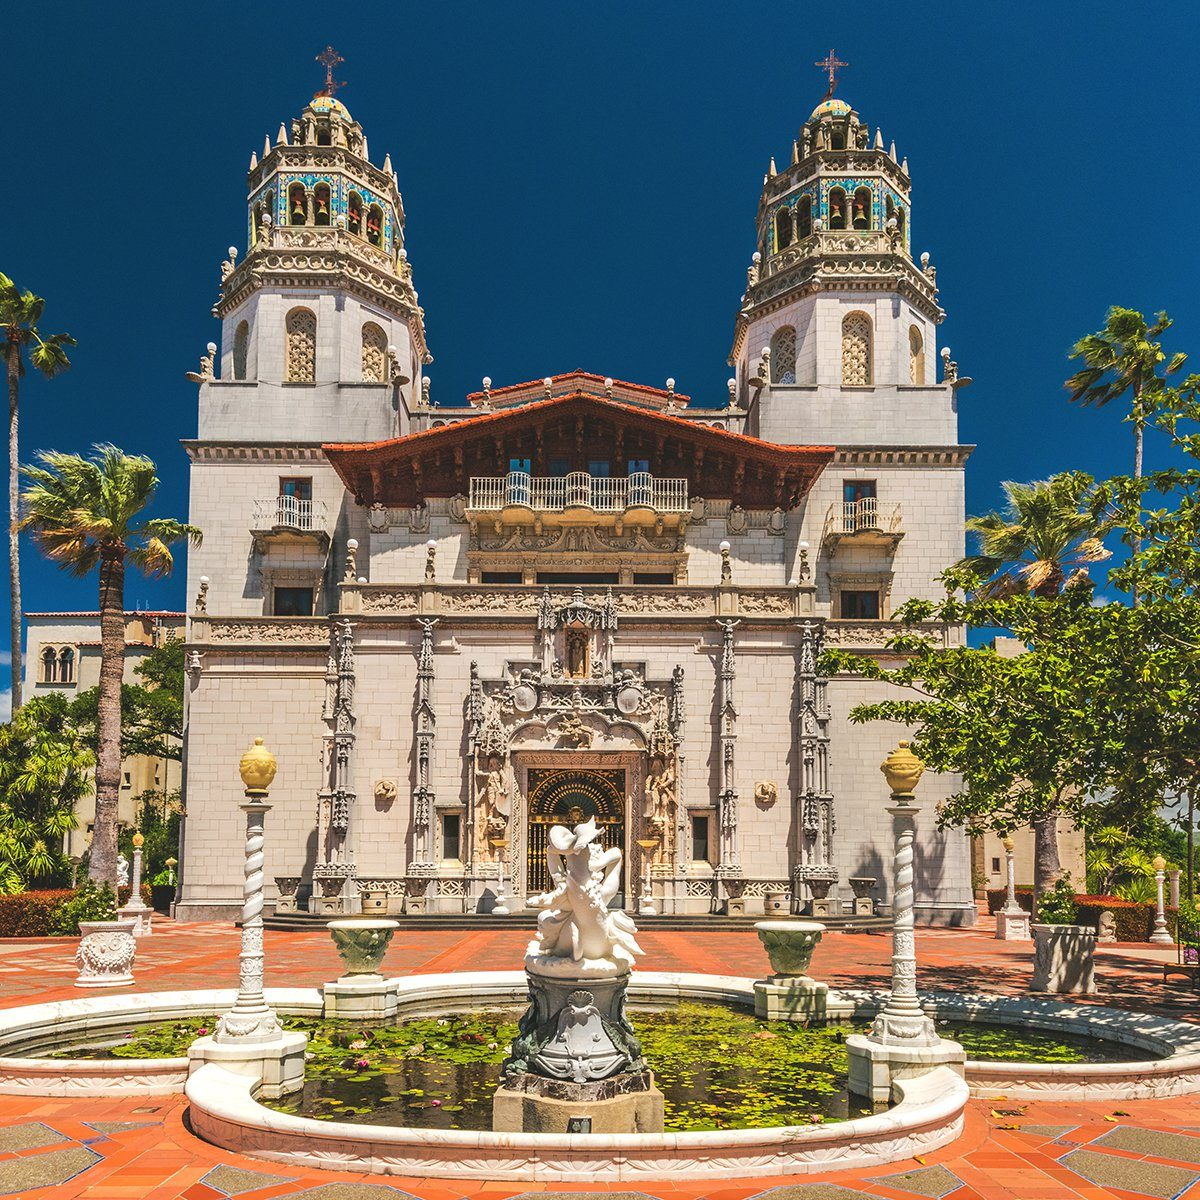 Exterior view of Hearst Castle, William Randolph Hearst's extravagant coastal hilltop estate designed by architect Julia Morgan over 28 years.